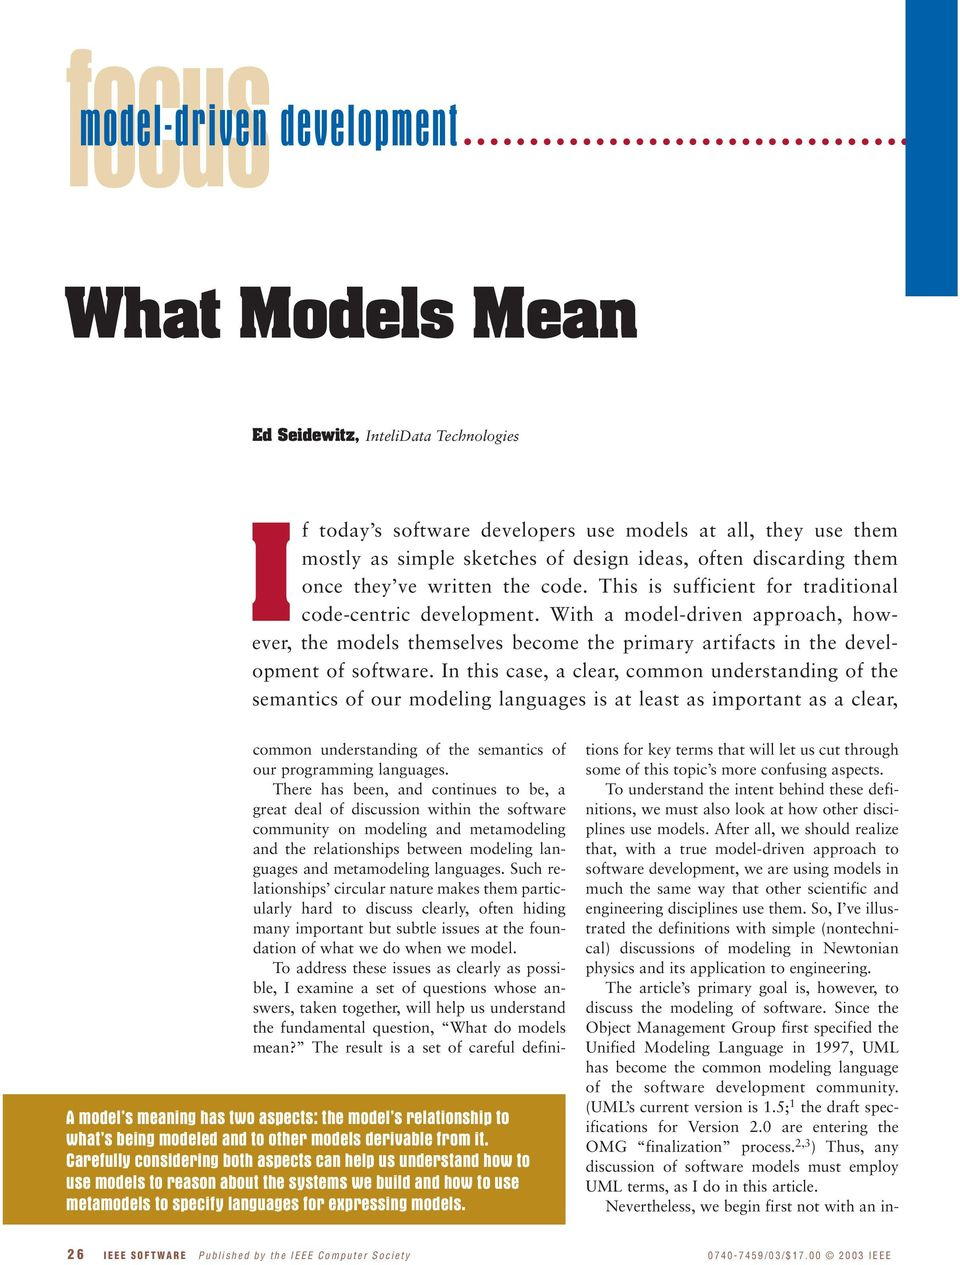 With a model-driven approach, however, the models themselves become the primary artifacts in the development of software.